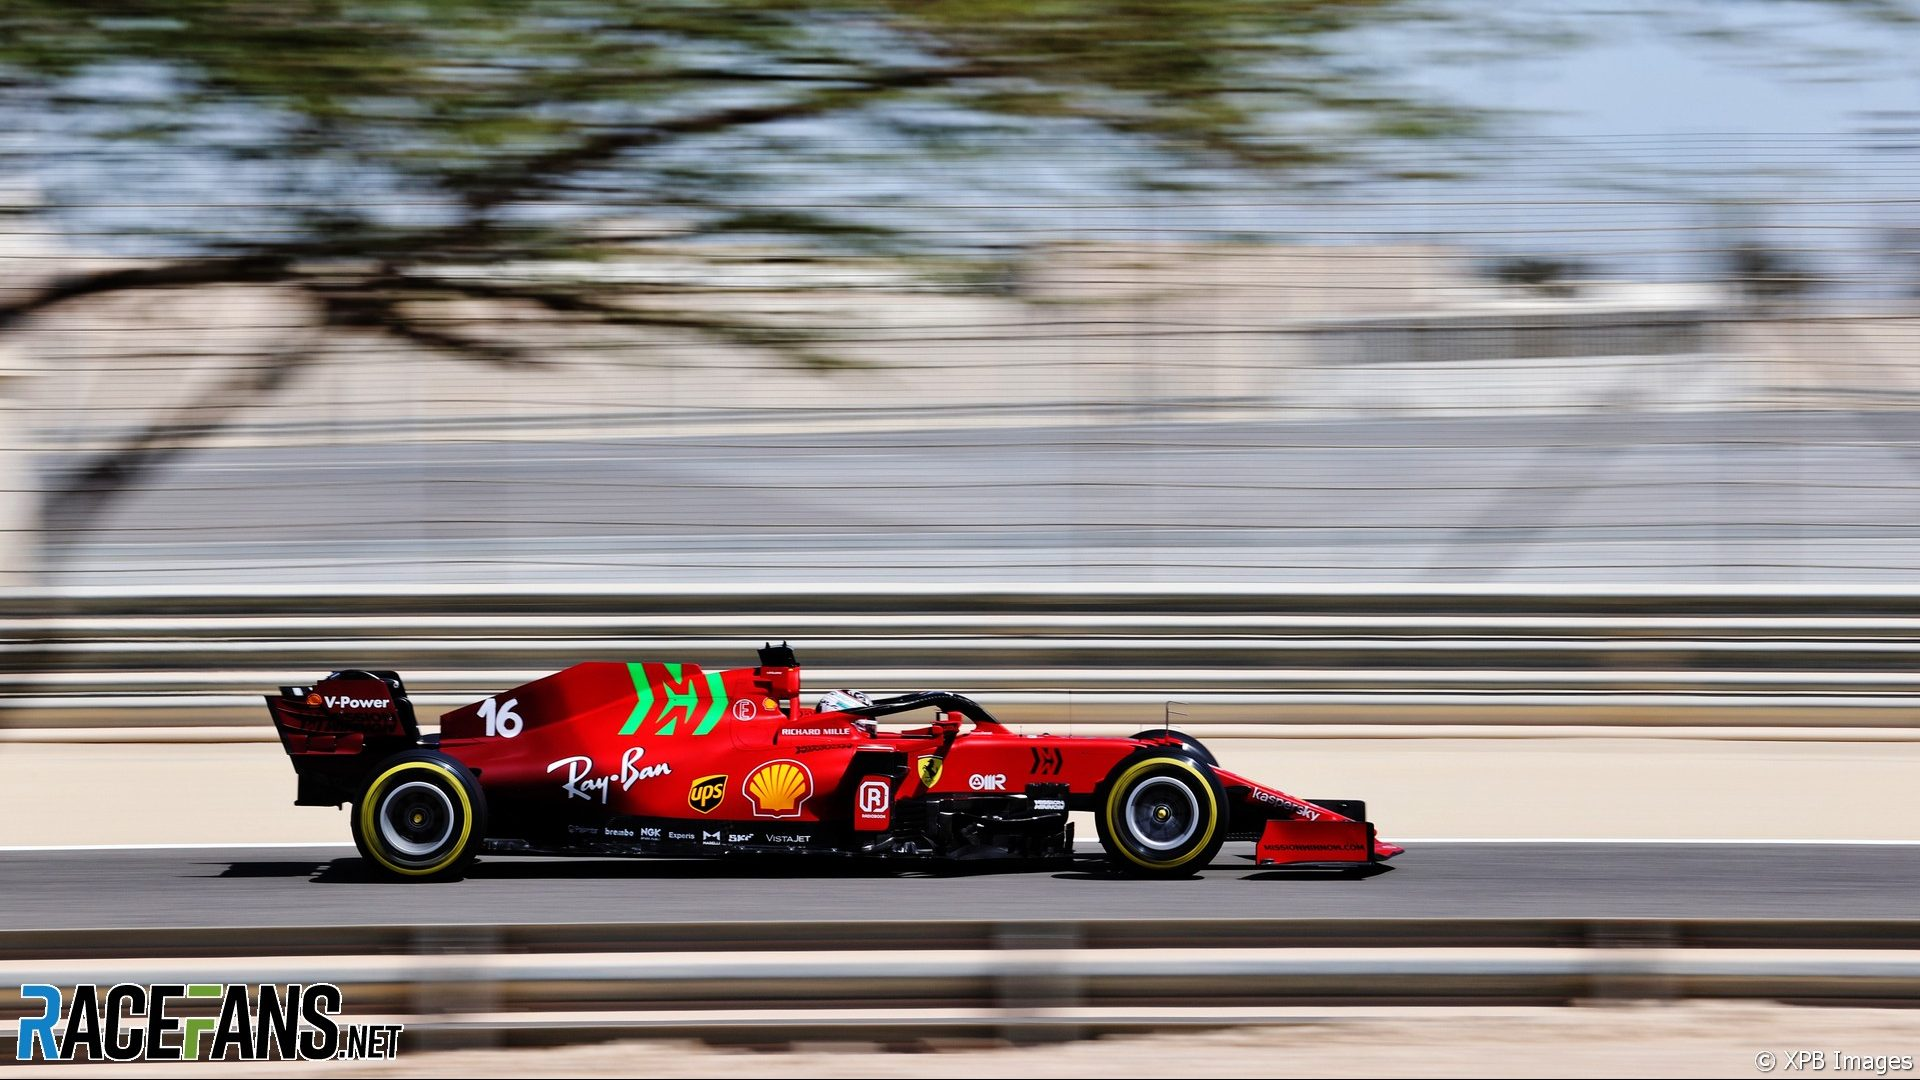 Charles Leclerc, Ferrari, Bahrain International Circuit, 2021